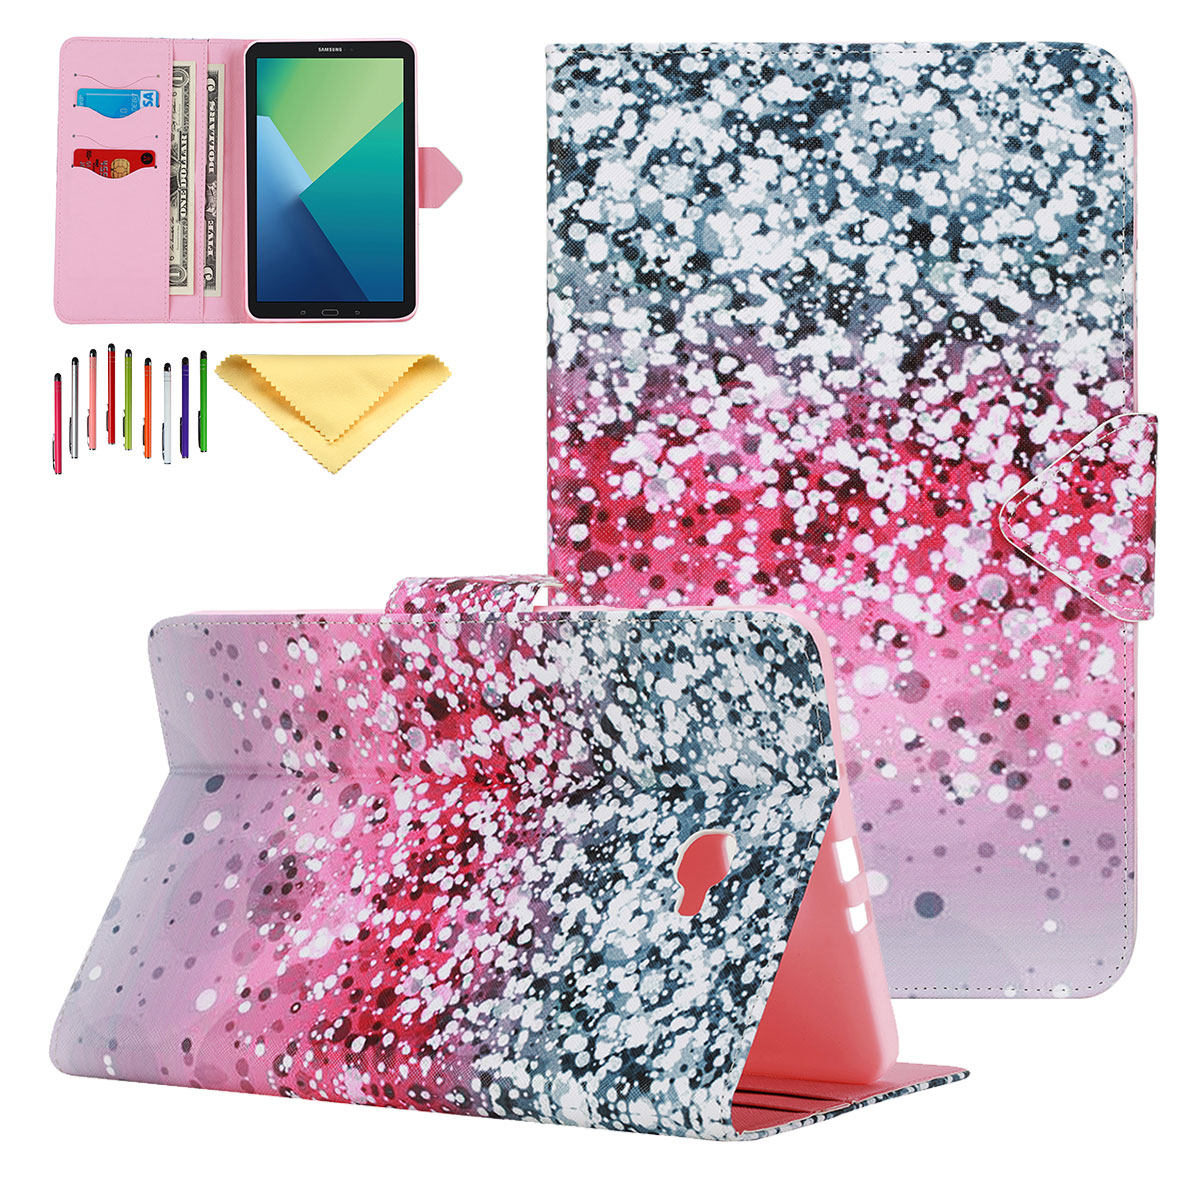 Goodest Case for Samsung Galaxy Tab A 7.0 2016 Release, Premium Leather Slim Shell Stand Folio Shocproof Lightweight Full Protection Kids Friendly Cover for Galaxy Tab 7.0 SM-T280/T285,Glitter Sand